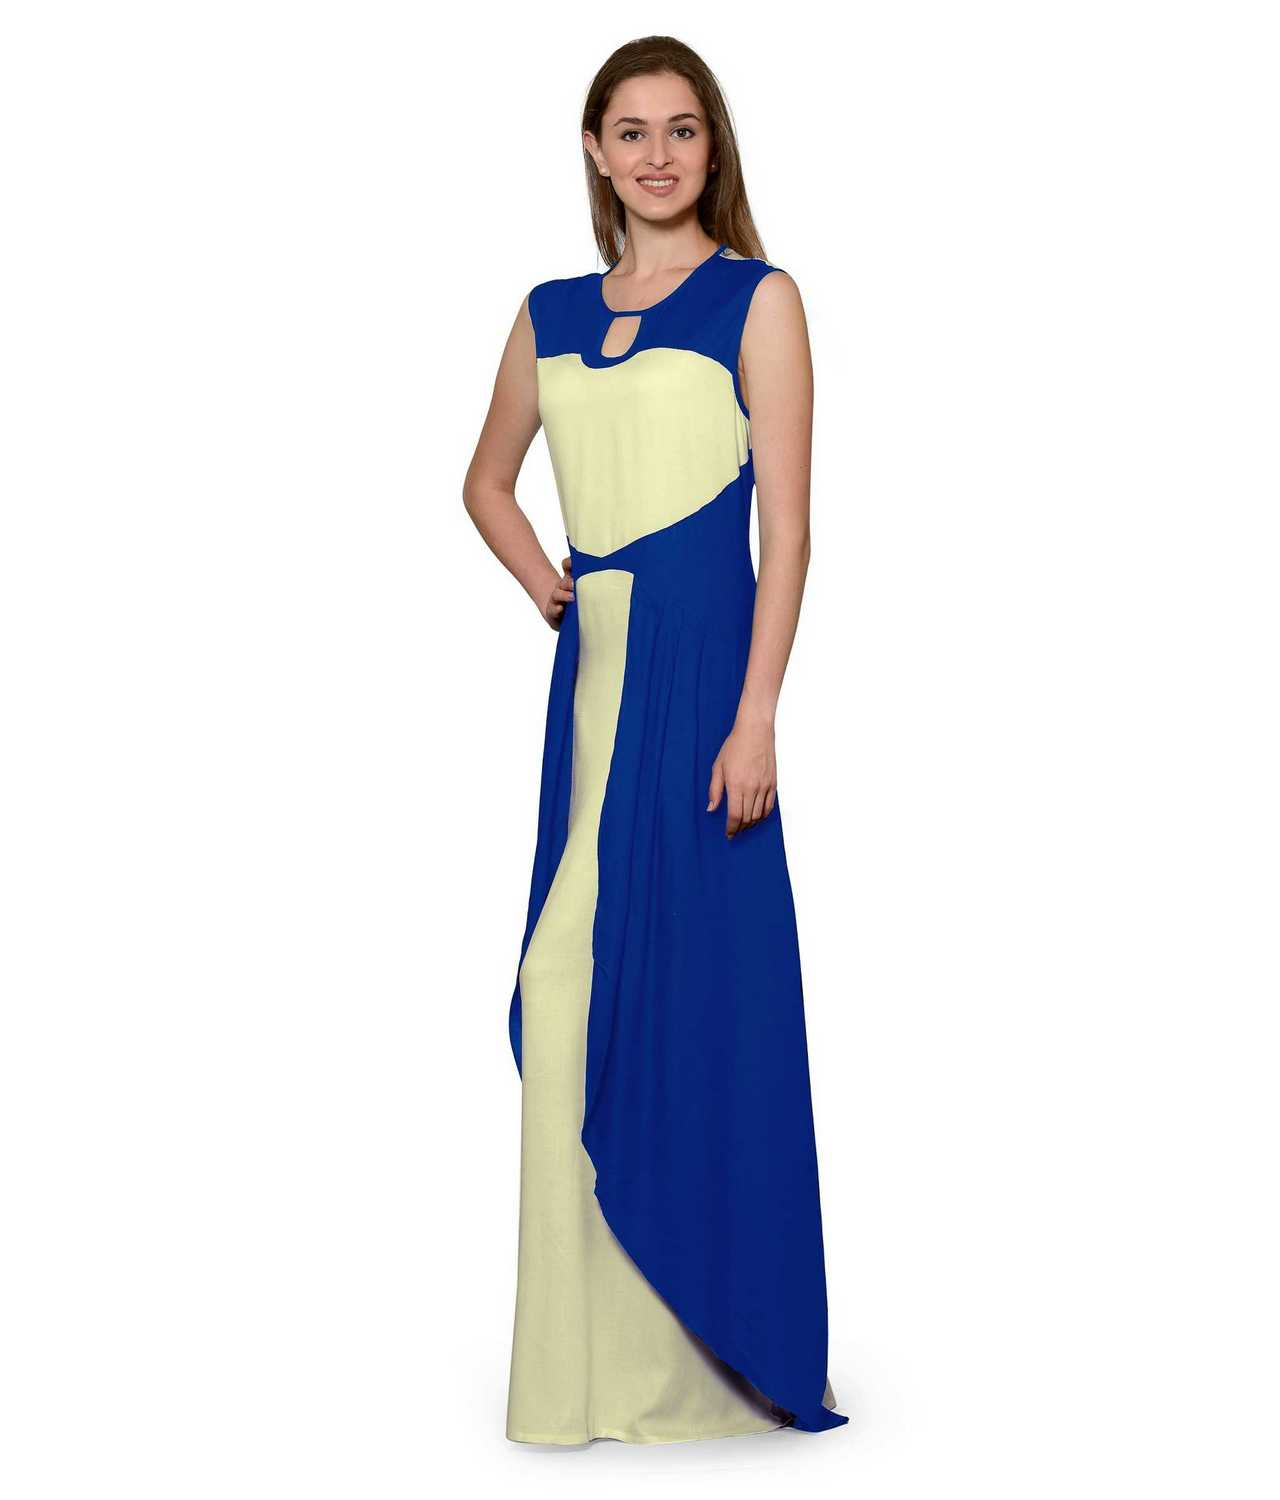 Color Block Maxi Dress or Gown  in Turquoise:Cream